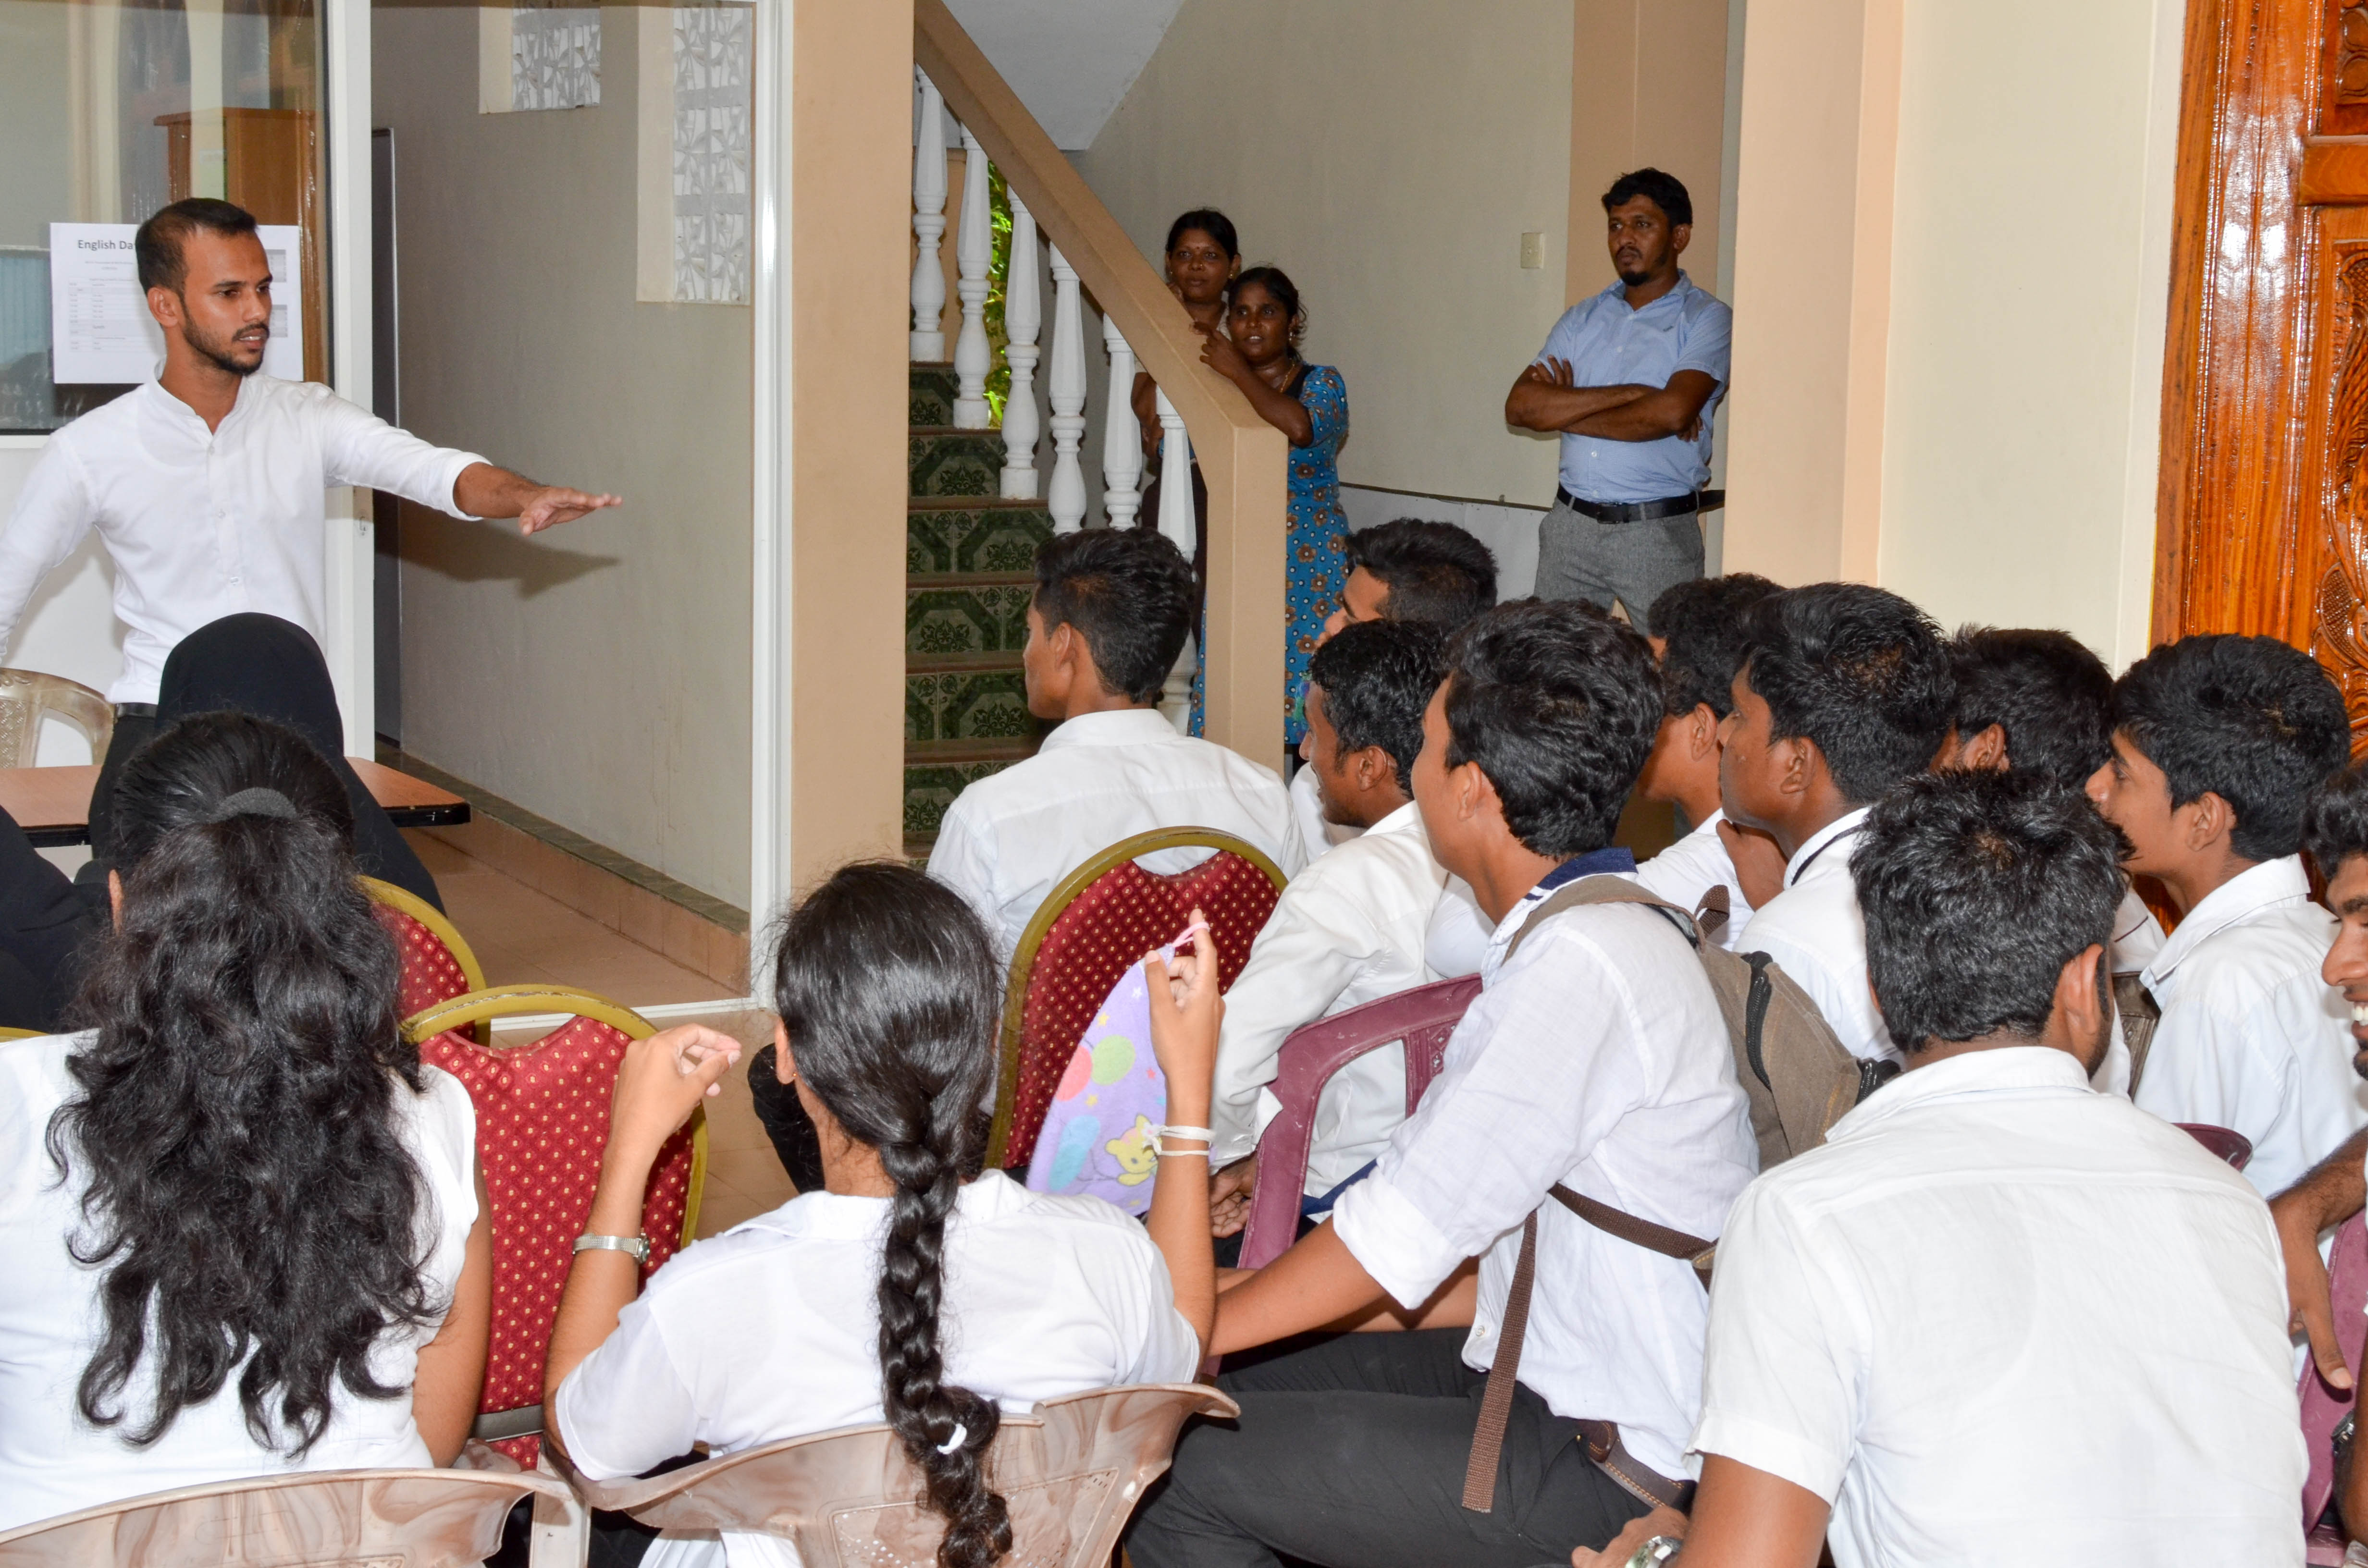 importance of learning english in sri lanka Even during this time, sri lanka's educational policy makers were not oblivious of the importance of english for the development of the country through education a programme was implemented to teach english as a second language to all school children irrespective of their social class.